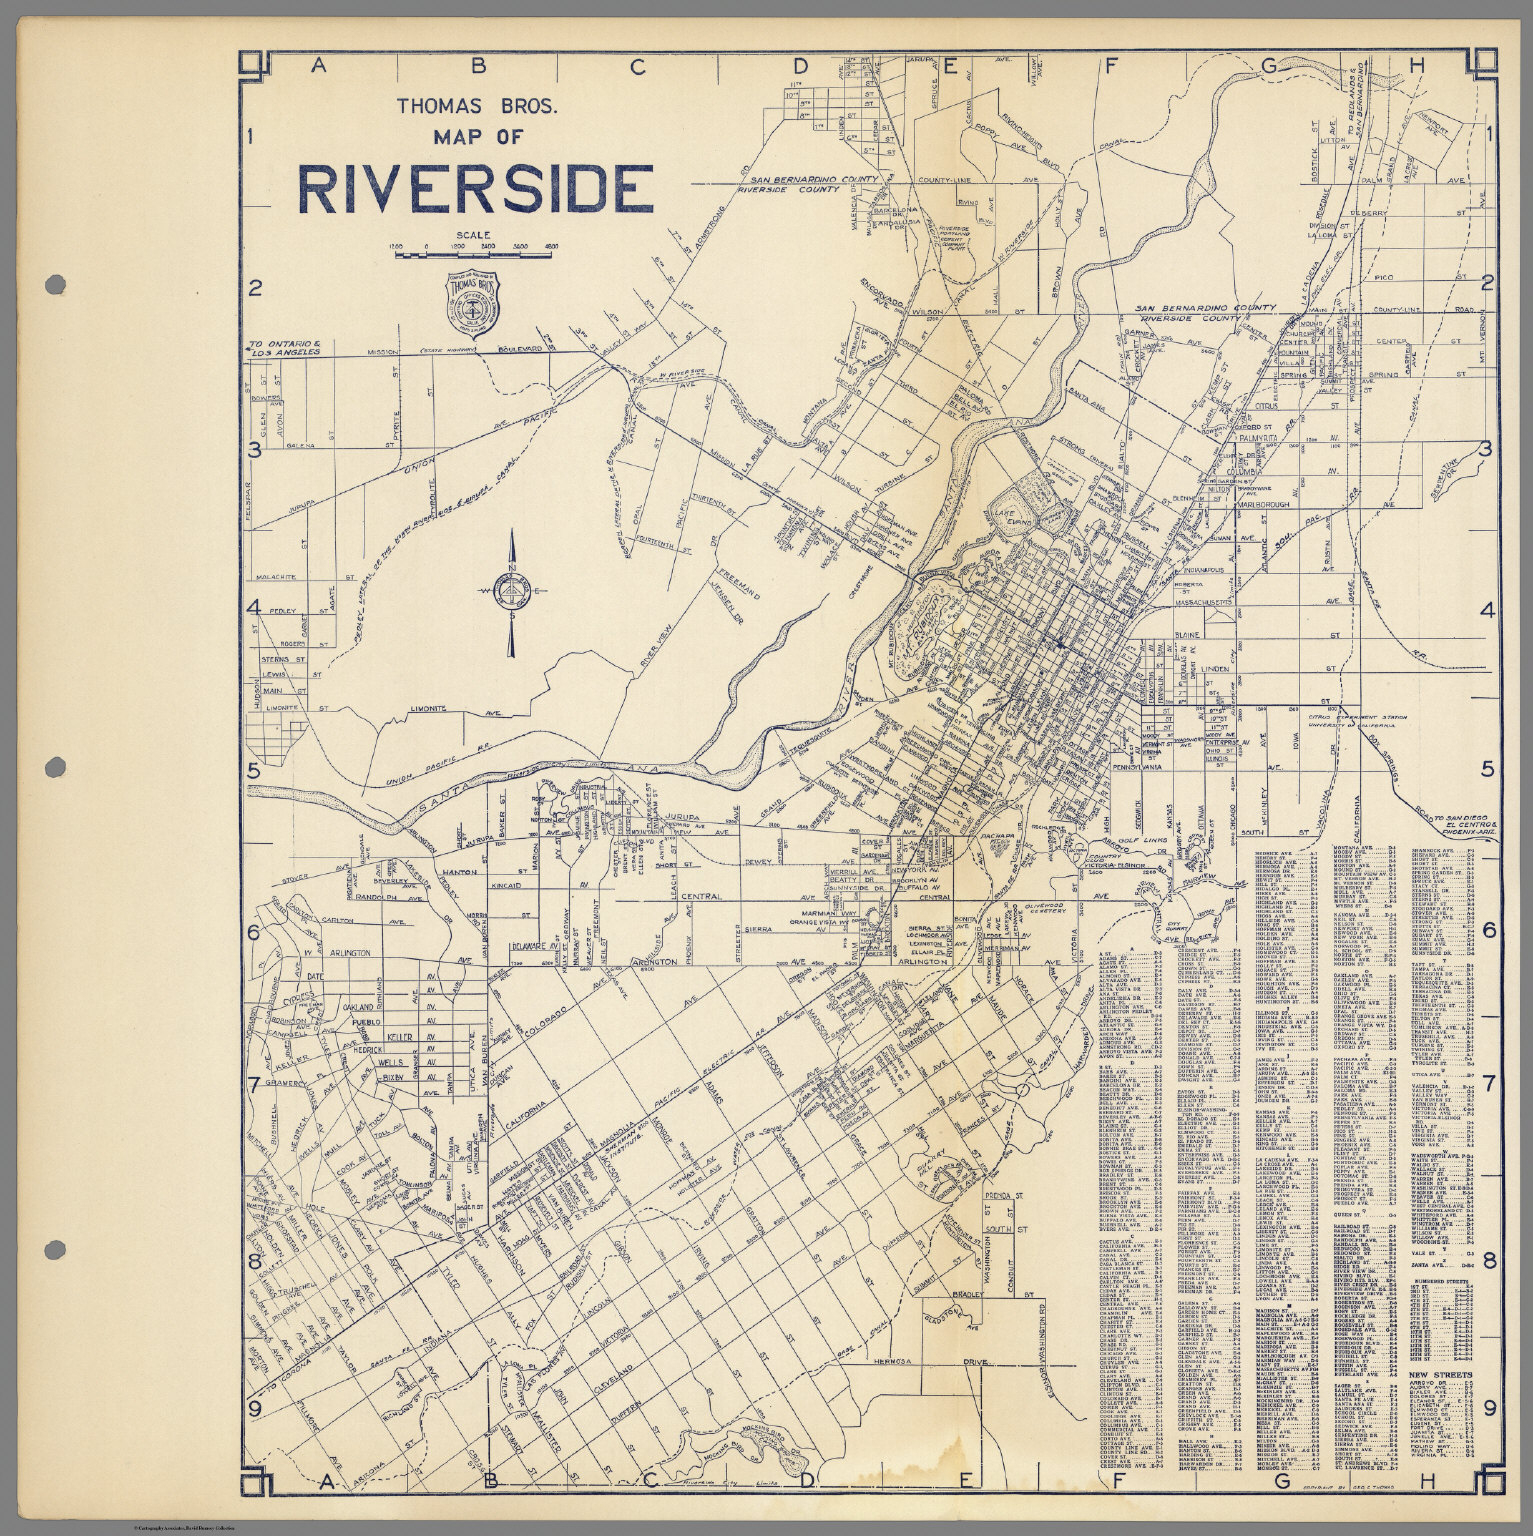 Thomas Bros. Map Of Riverside, California. - David Rumsey Historical - Thomas Bros Maps California